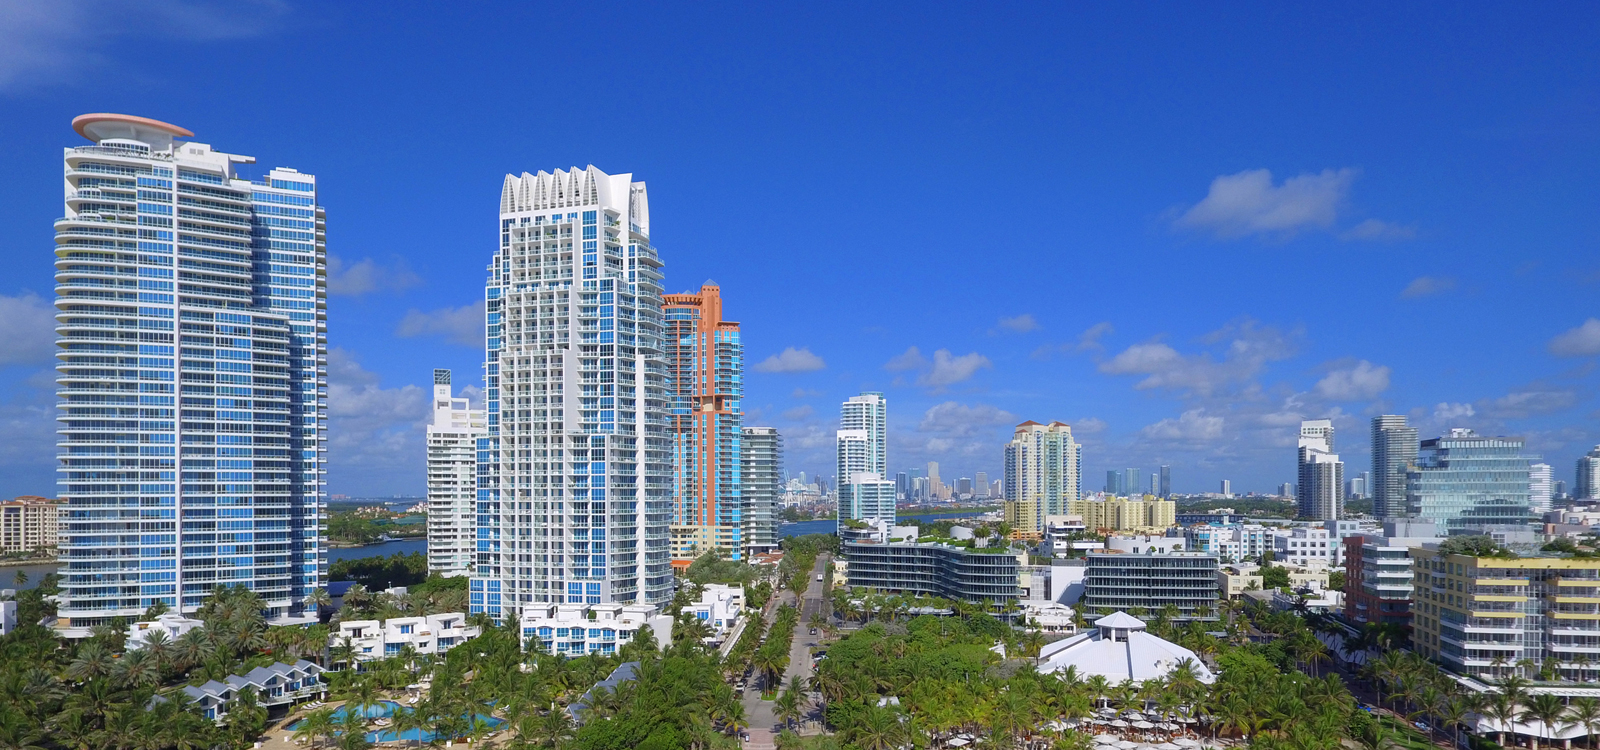 COME EXPLORE ONE OF THE TOP HOTELS IN SOUTH BEACH